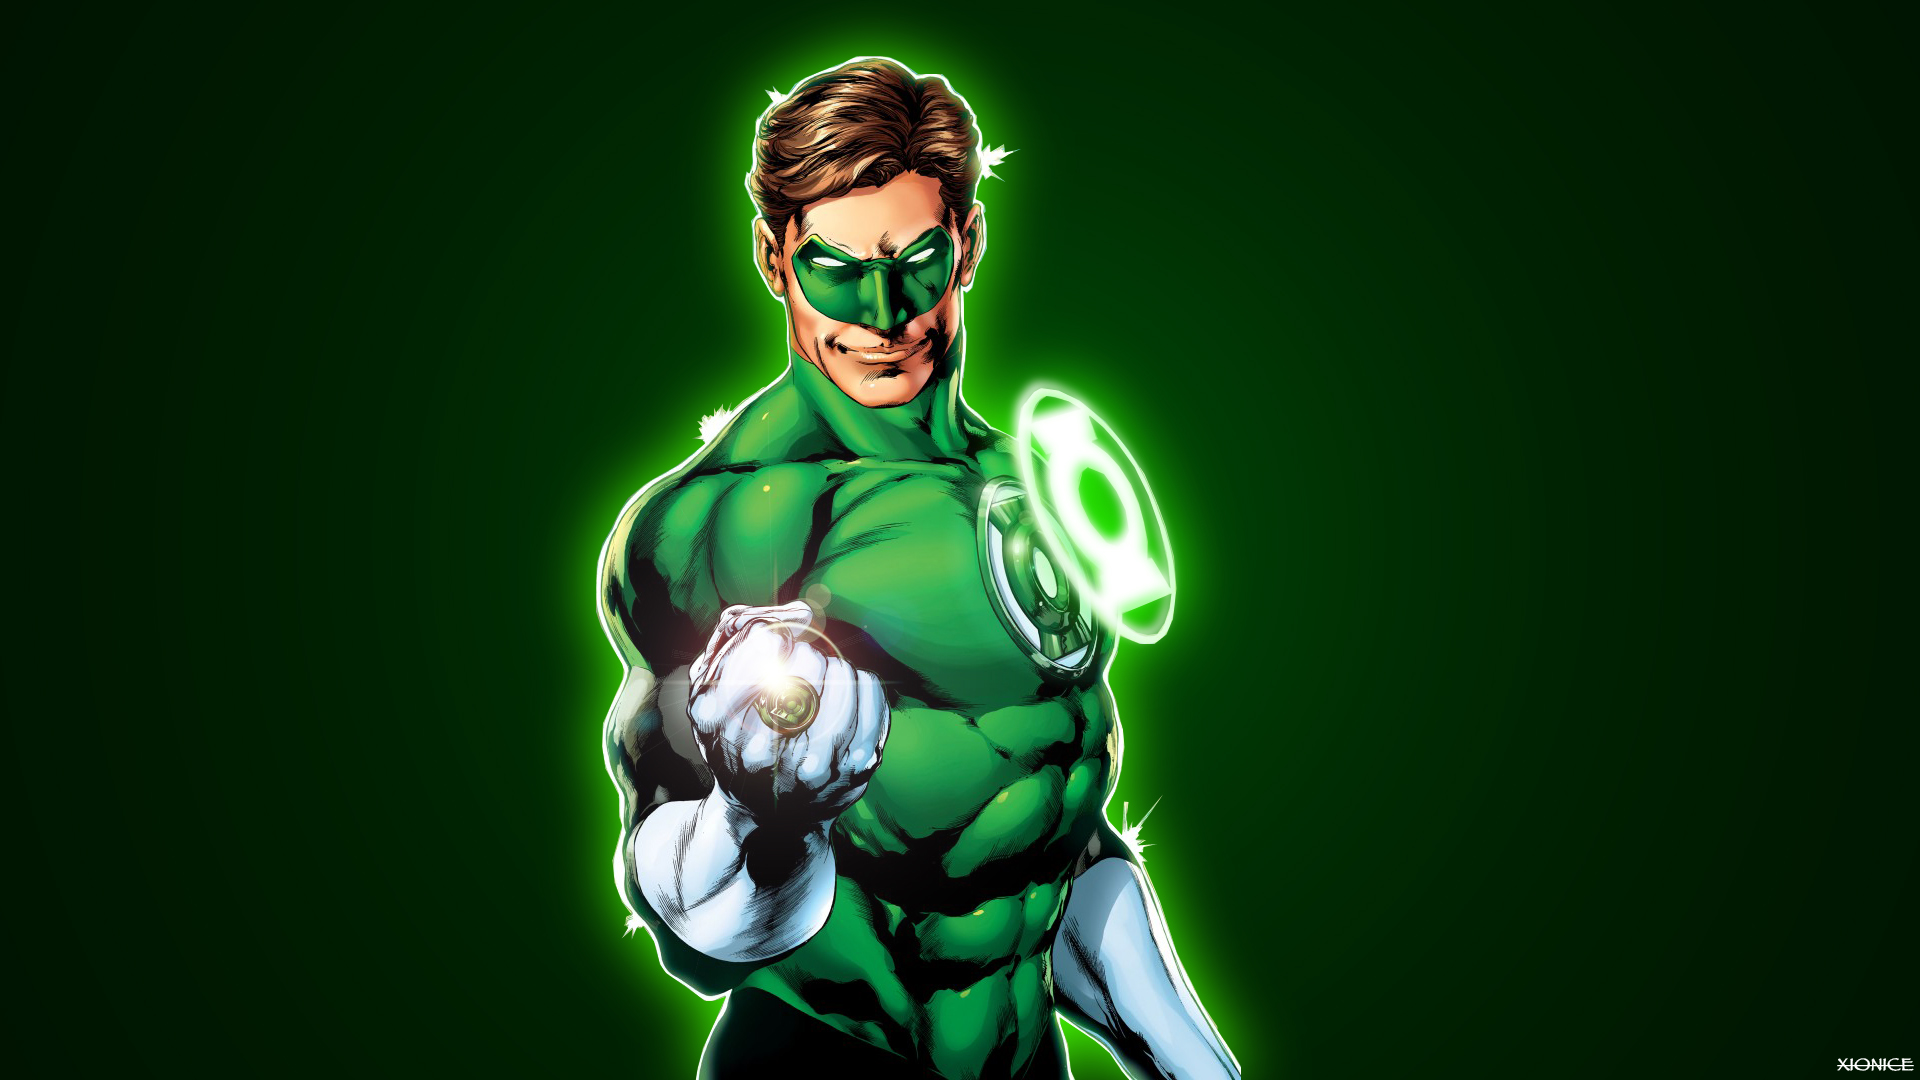 The Green Lantern Wallpapers Group 86